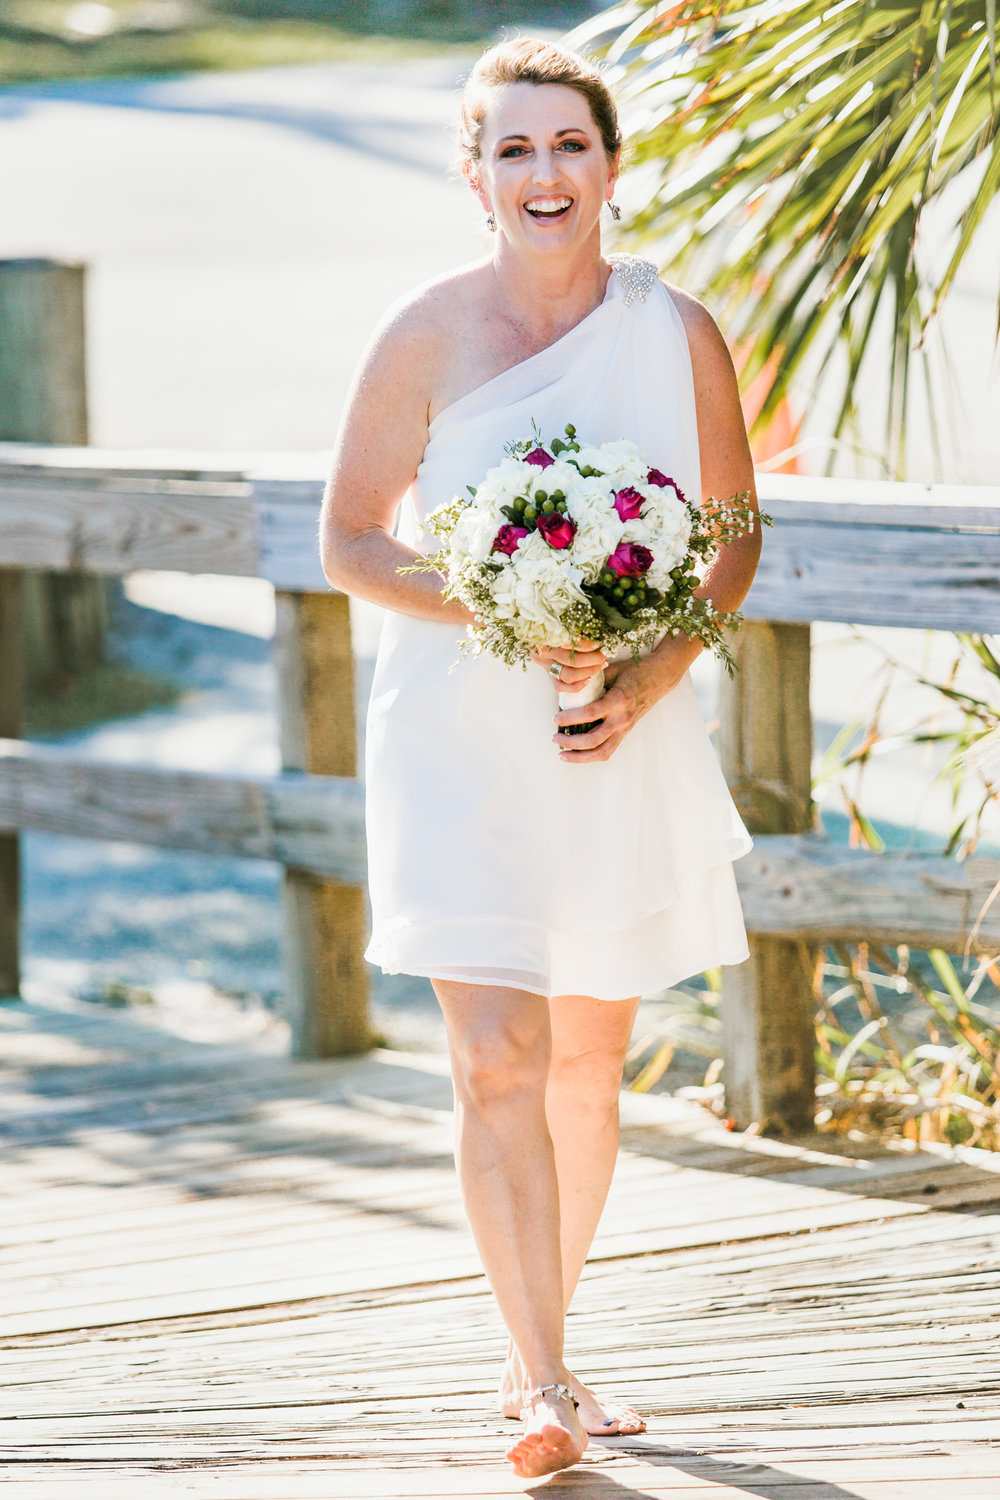 Violets & Seastars- November Ponce Inlet Wedding - Suzette & Dwight 13.jpg